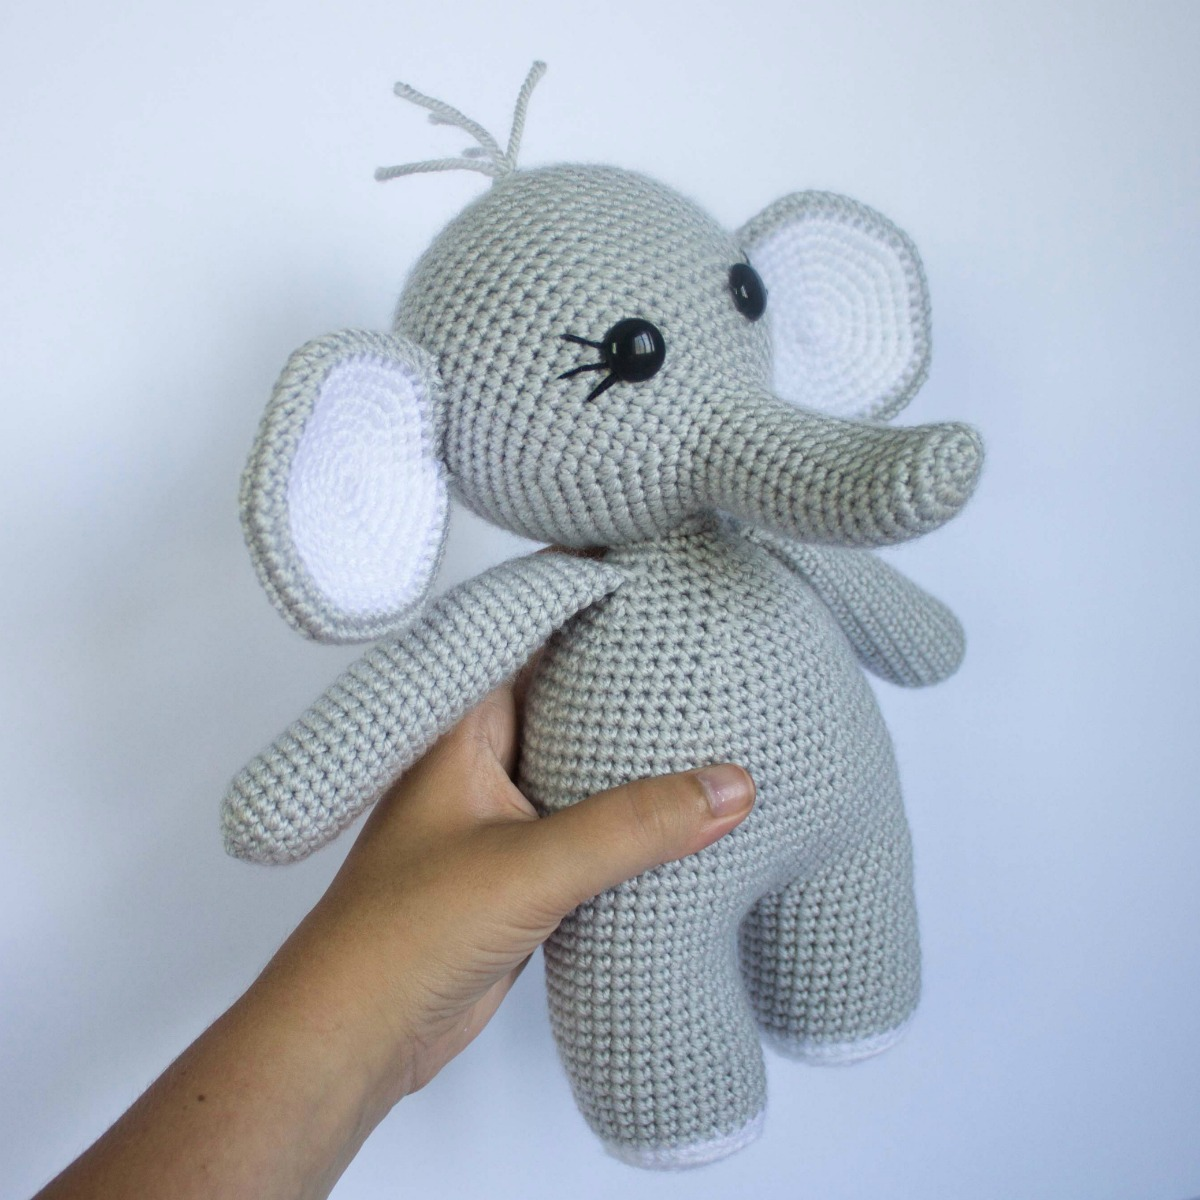 Crochet PATTERN No 1633 - Grey Elephant Echo by Krawka, cute ... | 1200x1200